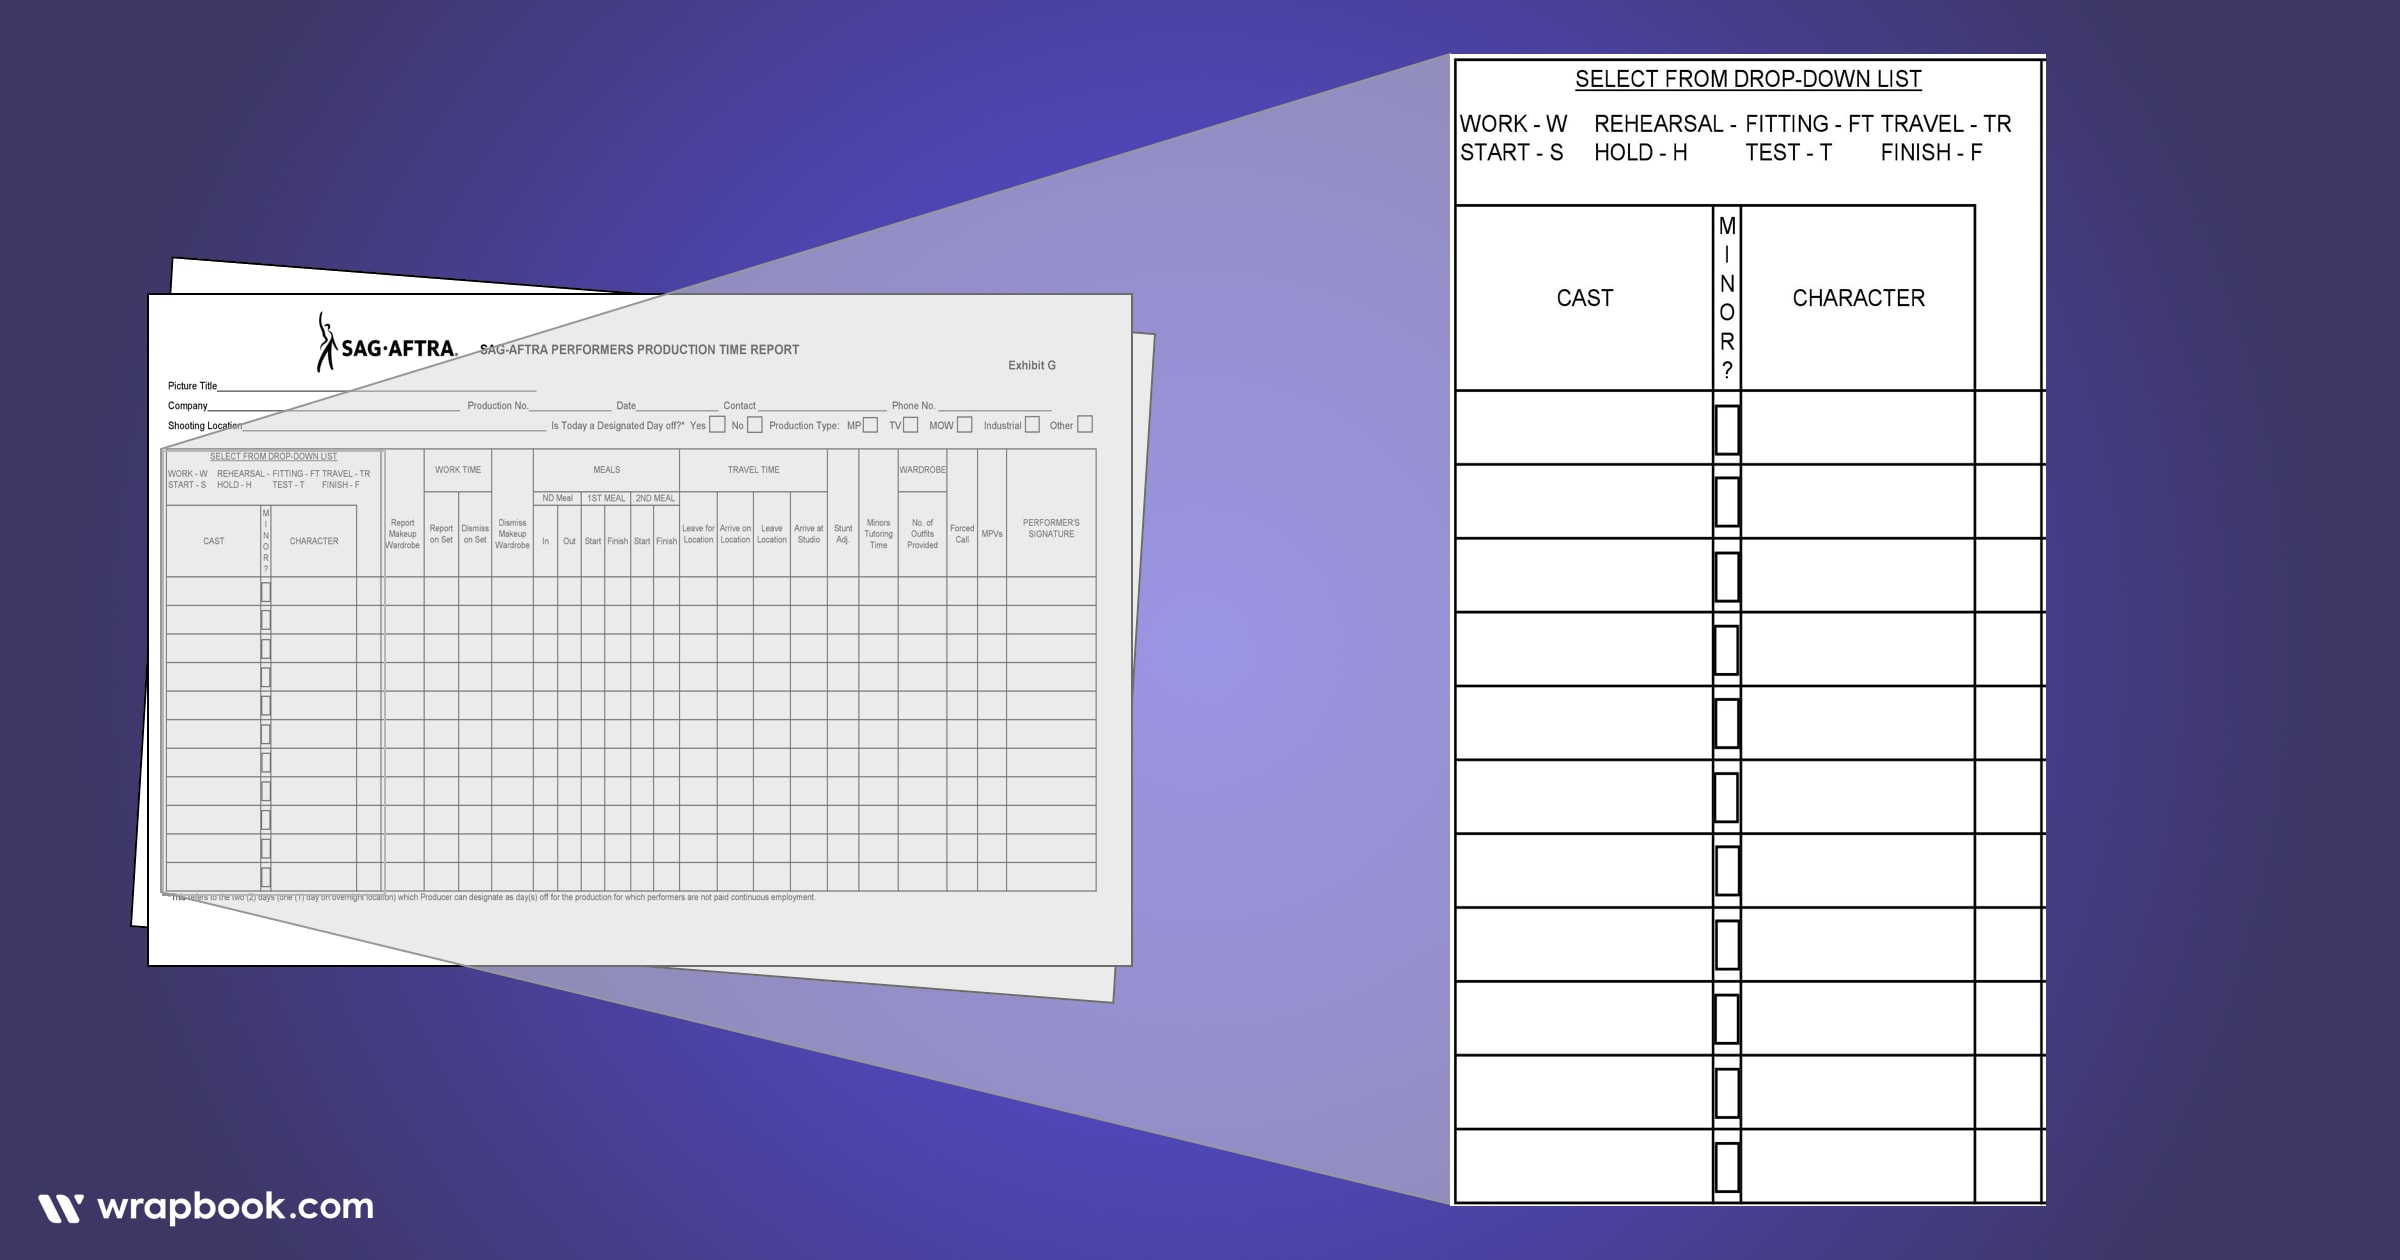 Get ready to learn some acronyms - How to Fill Out The SAG Exhibit G Form